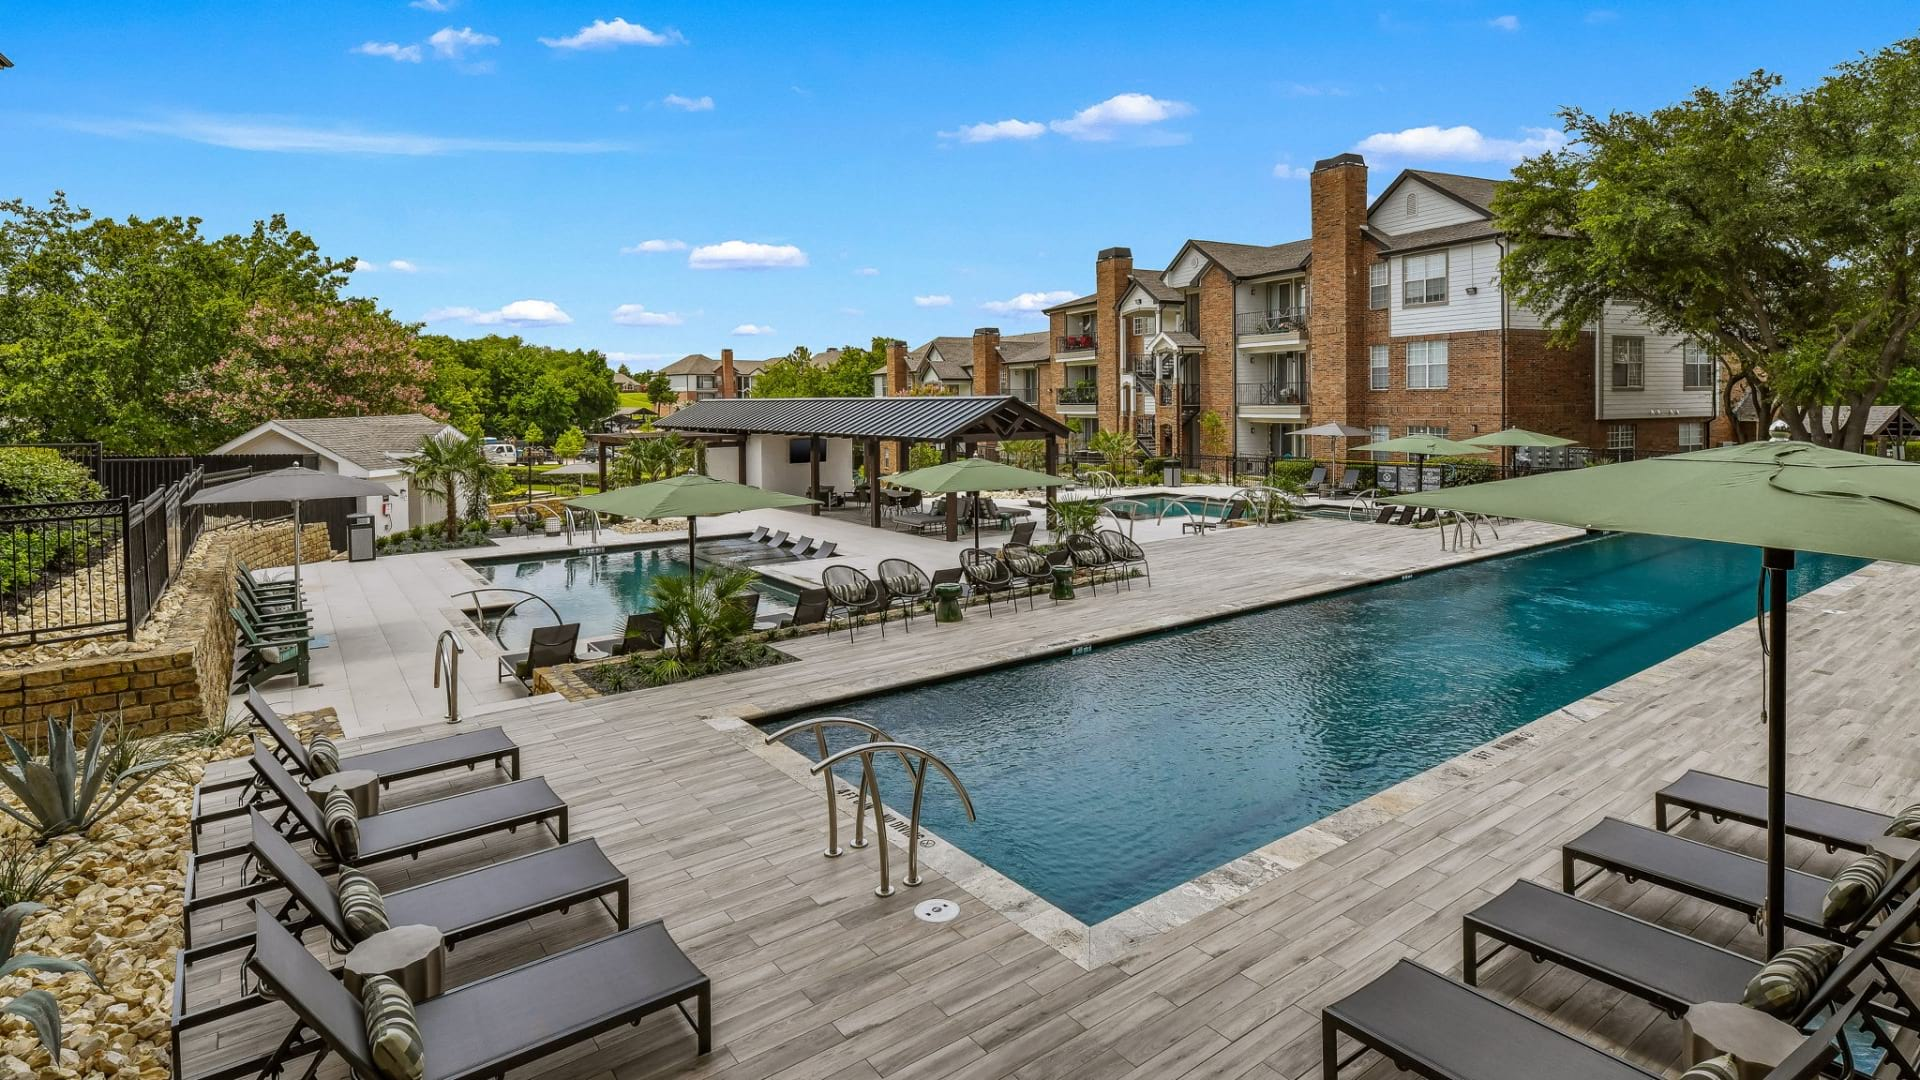 Plano apartments with swimming pool